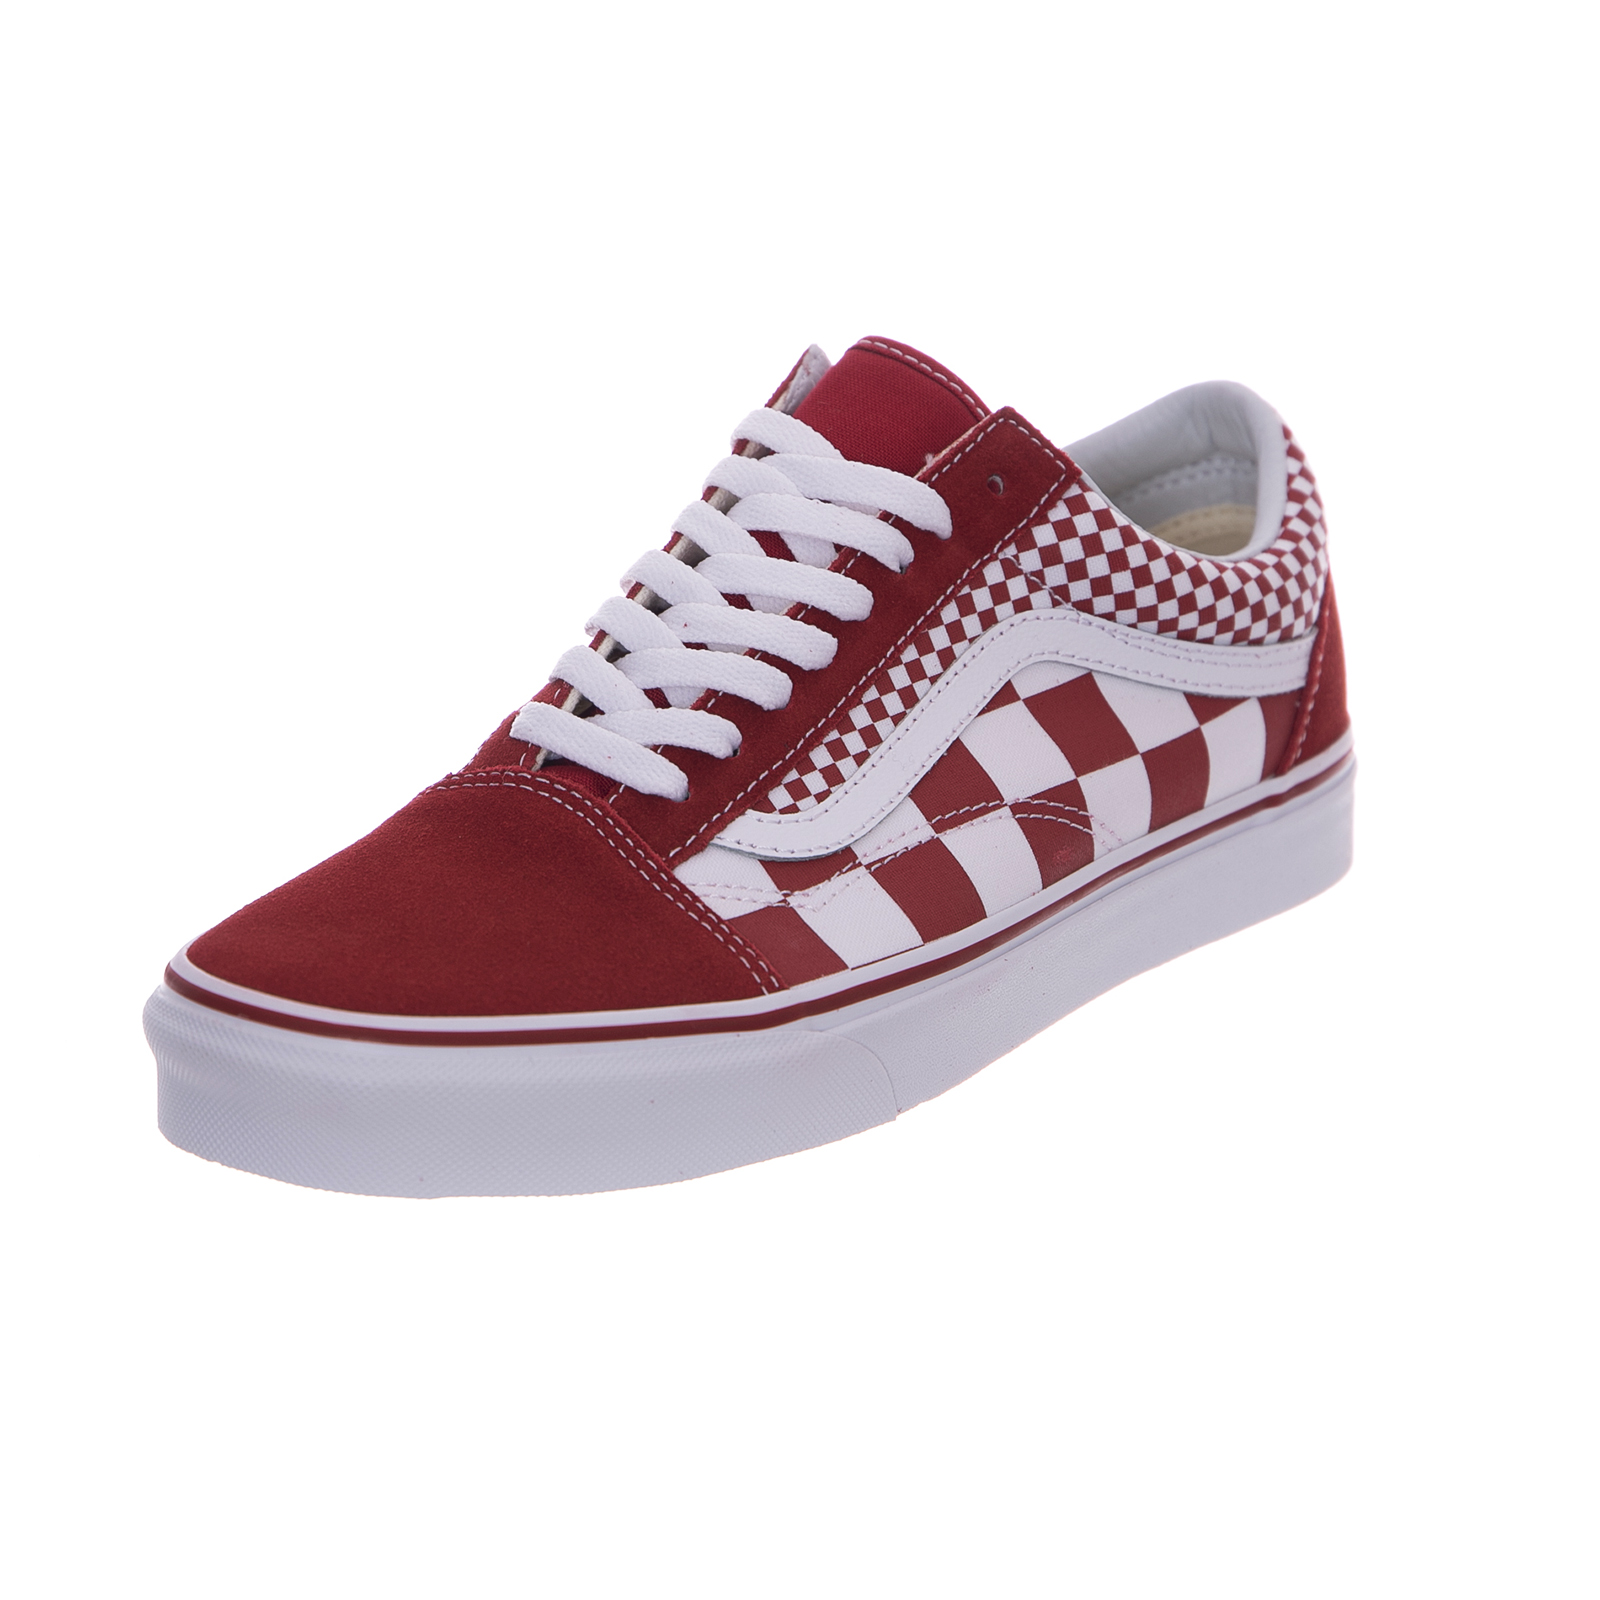 562ac0c919a Vans sneakers ua old skool mix checker chili pepper true white red ...